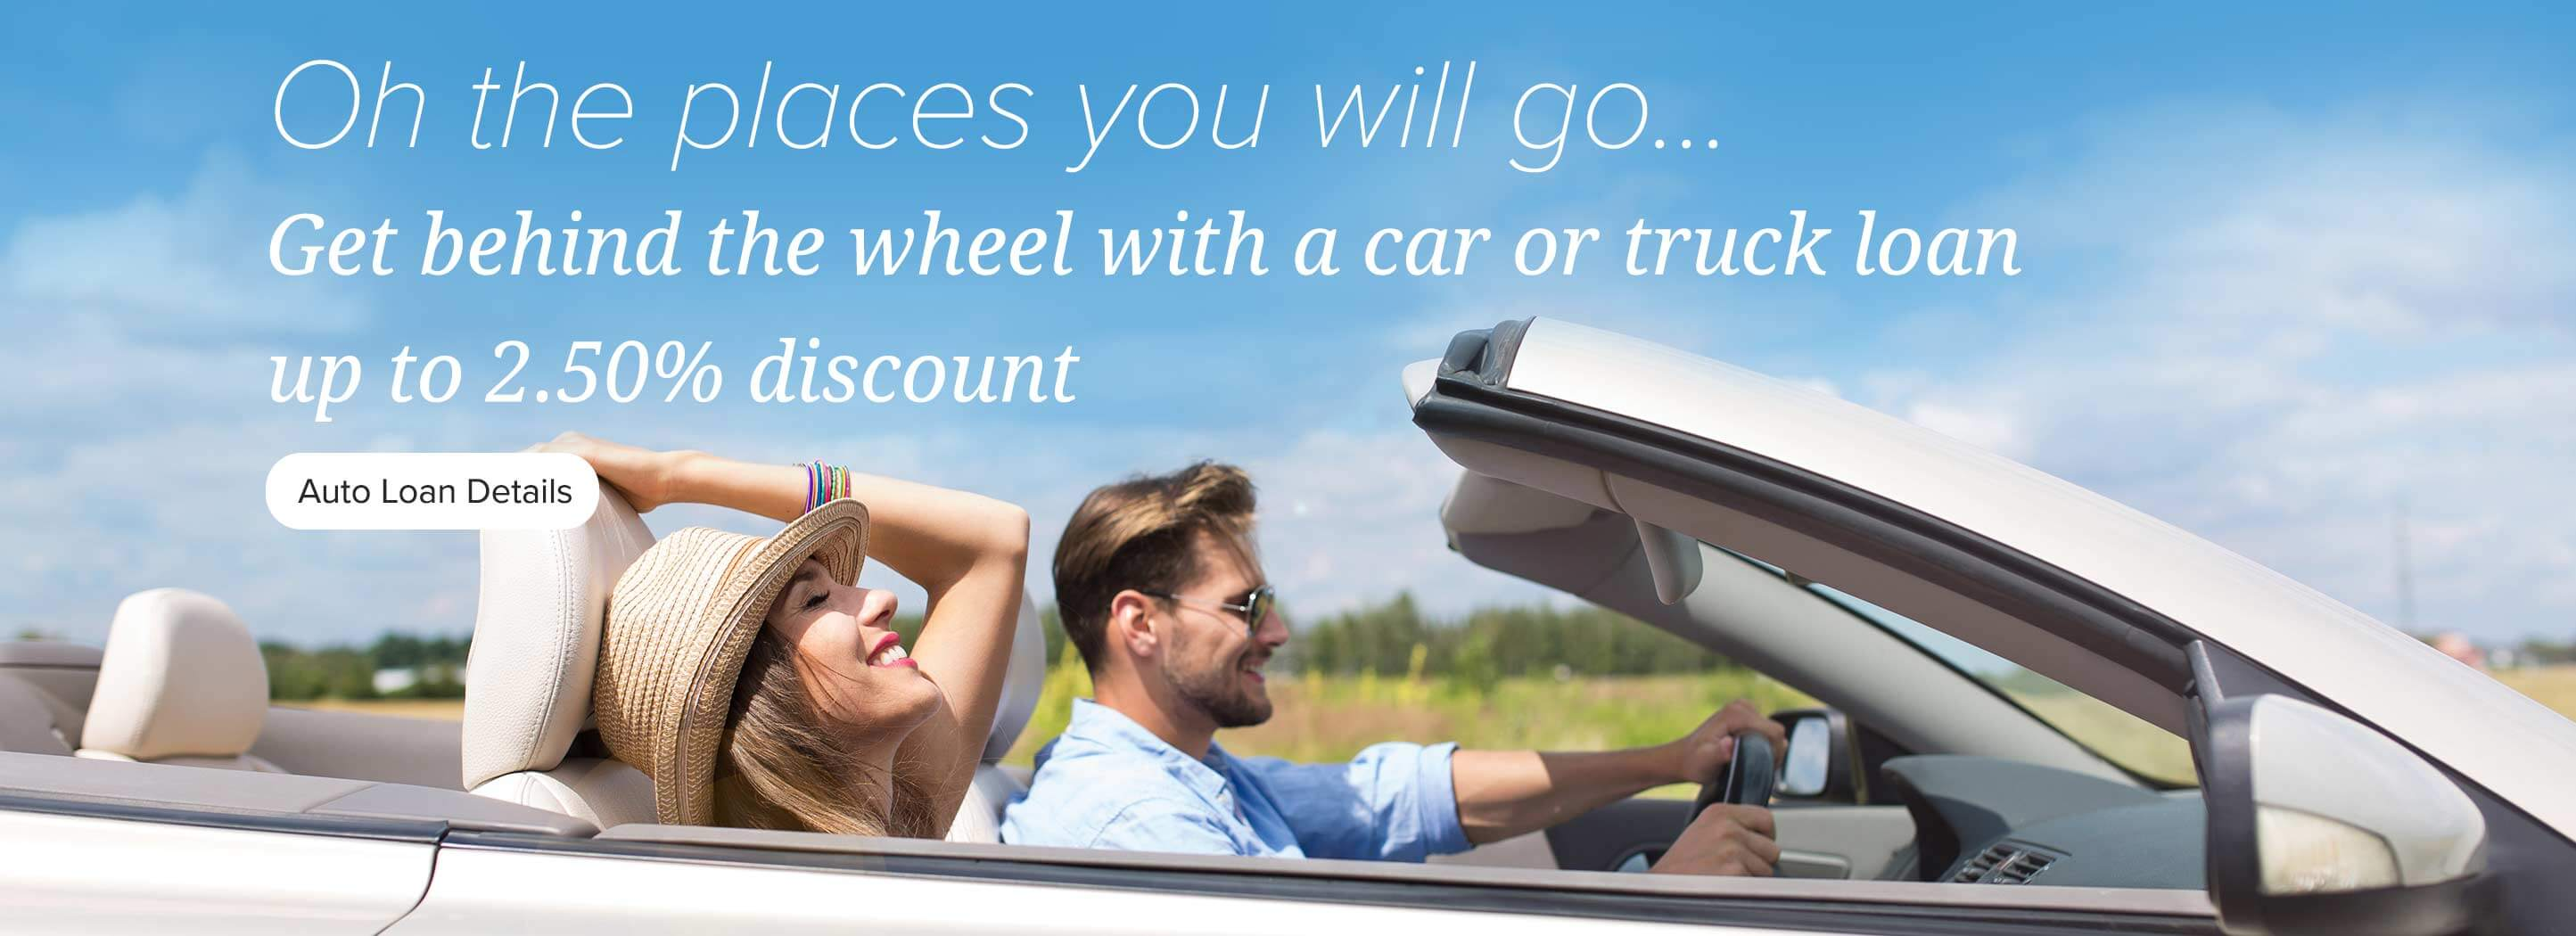 Oh the places you will go... Get behind the wheel on a Car & Truck loan up to 2.50% discount. Auto Loan Details.